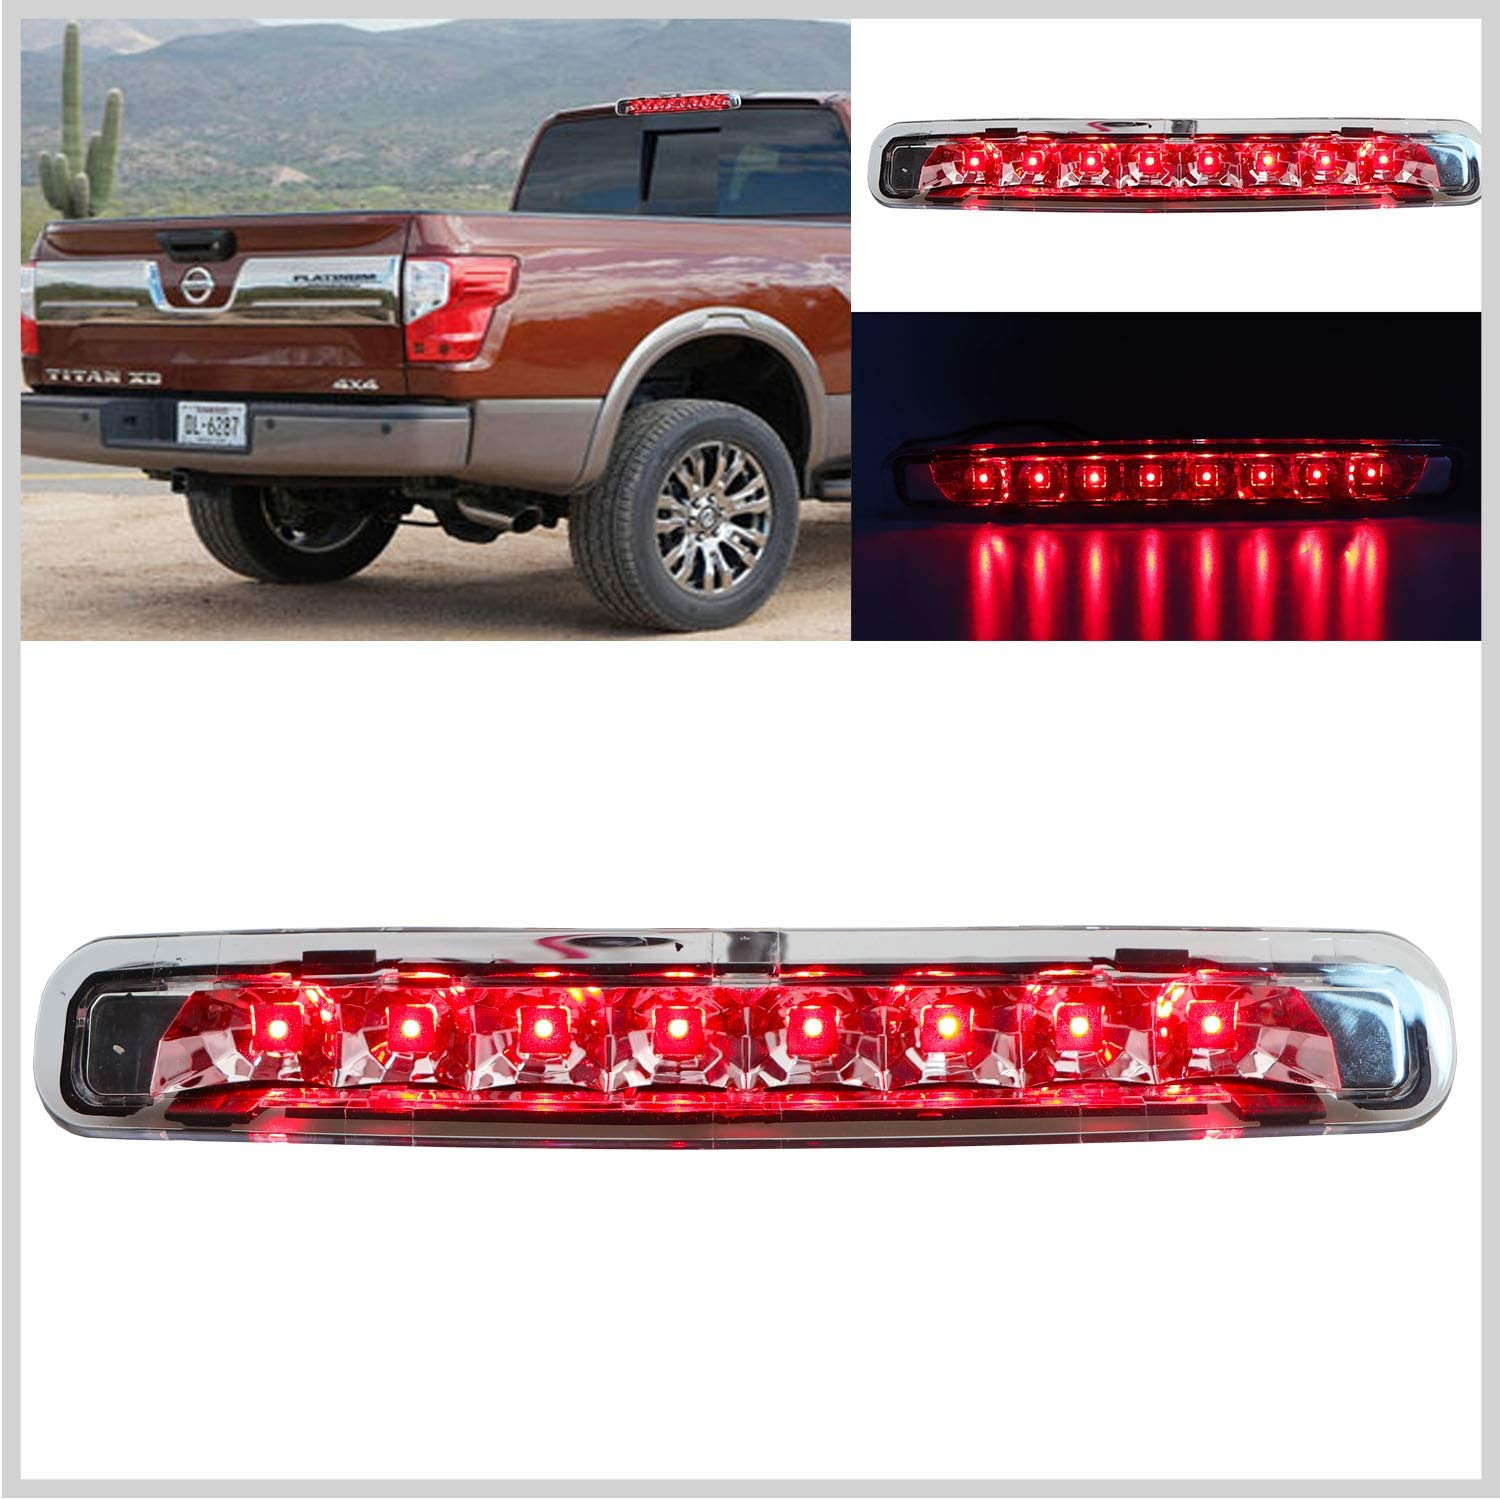 OCPTY High Mount Brake Light LED 3rd Light Clear Lens Rear Roof Light Replacement fit for 2013-2018 Ford Escape